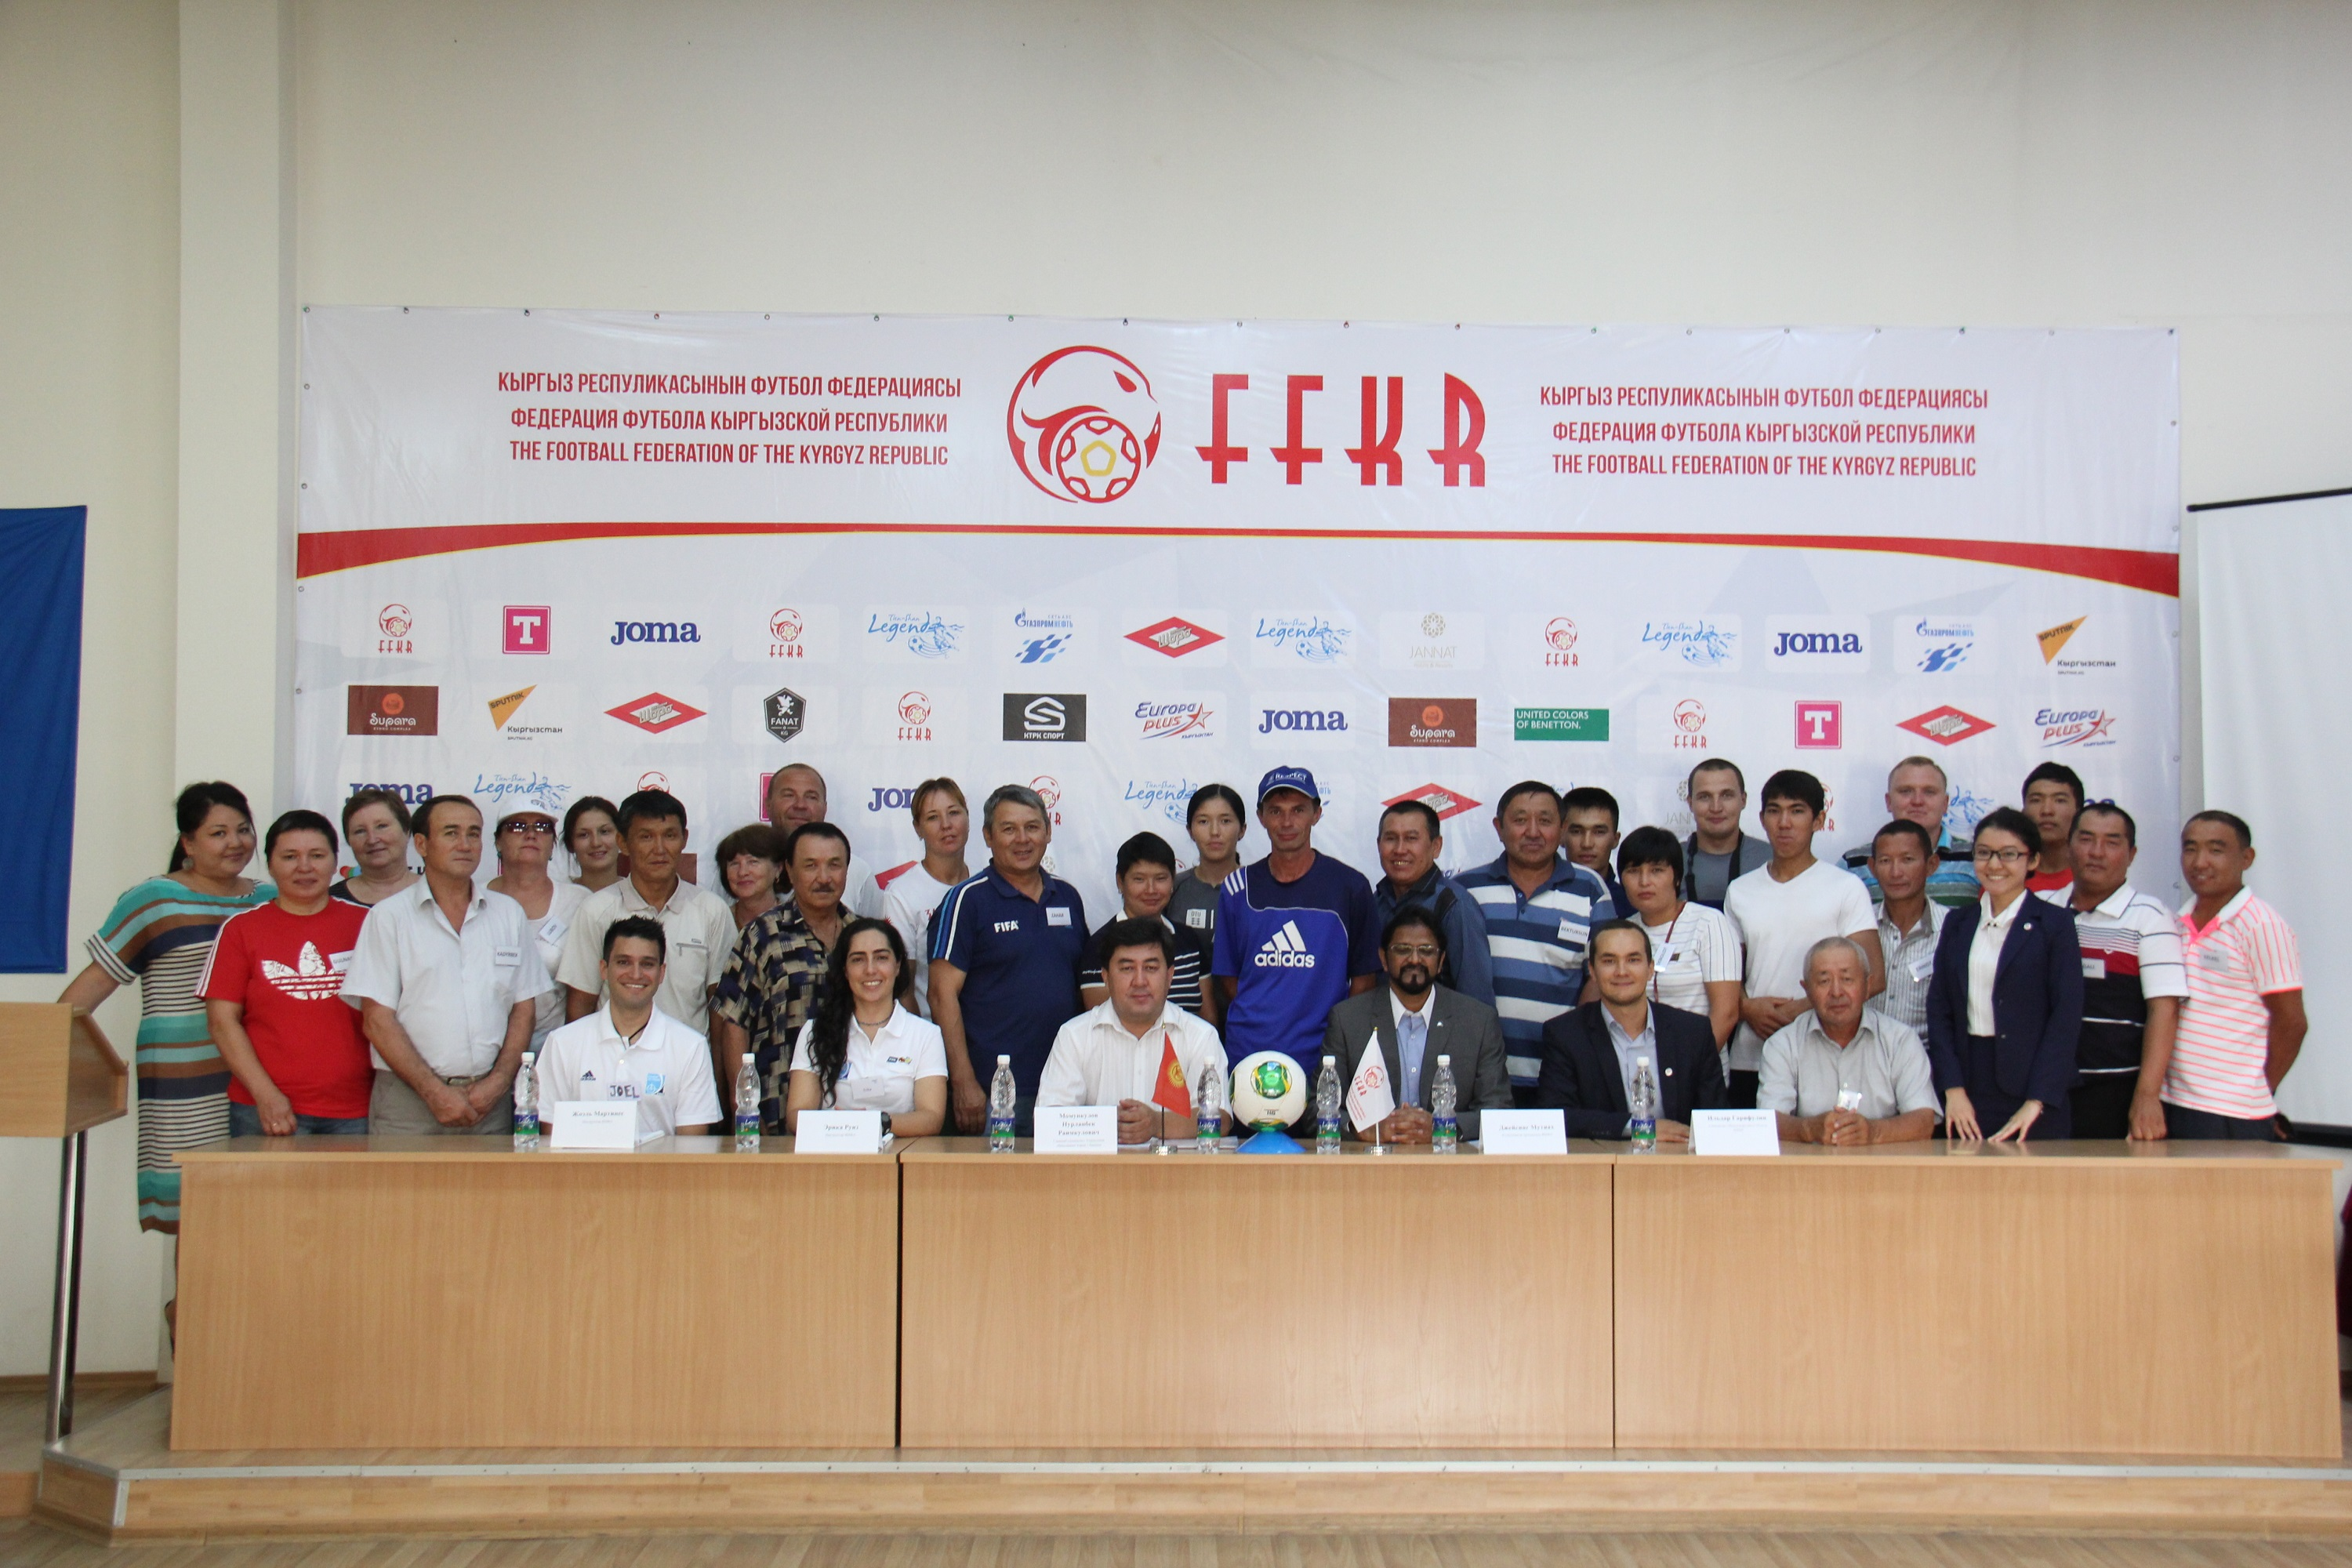 FIFA 11 for Health programme introduced in Central Asia